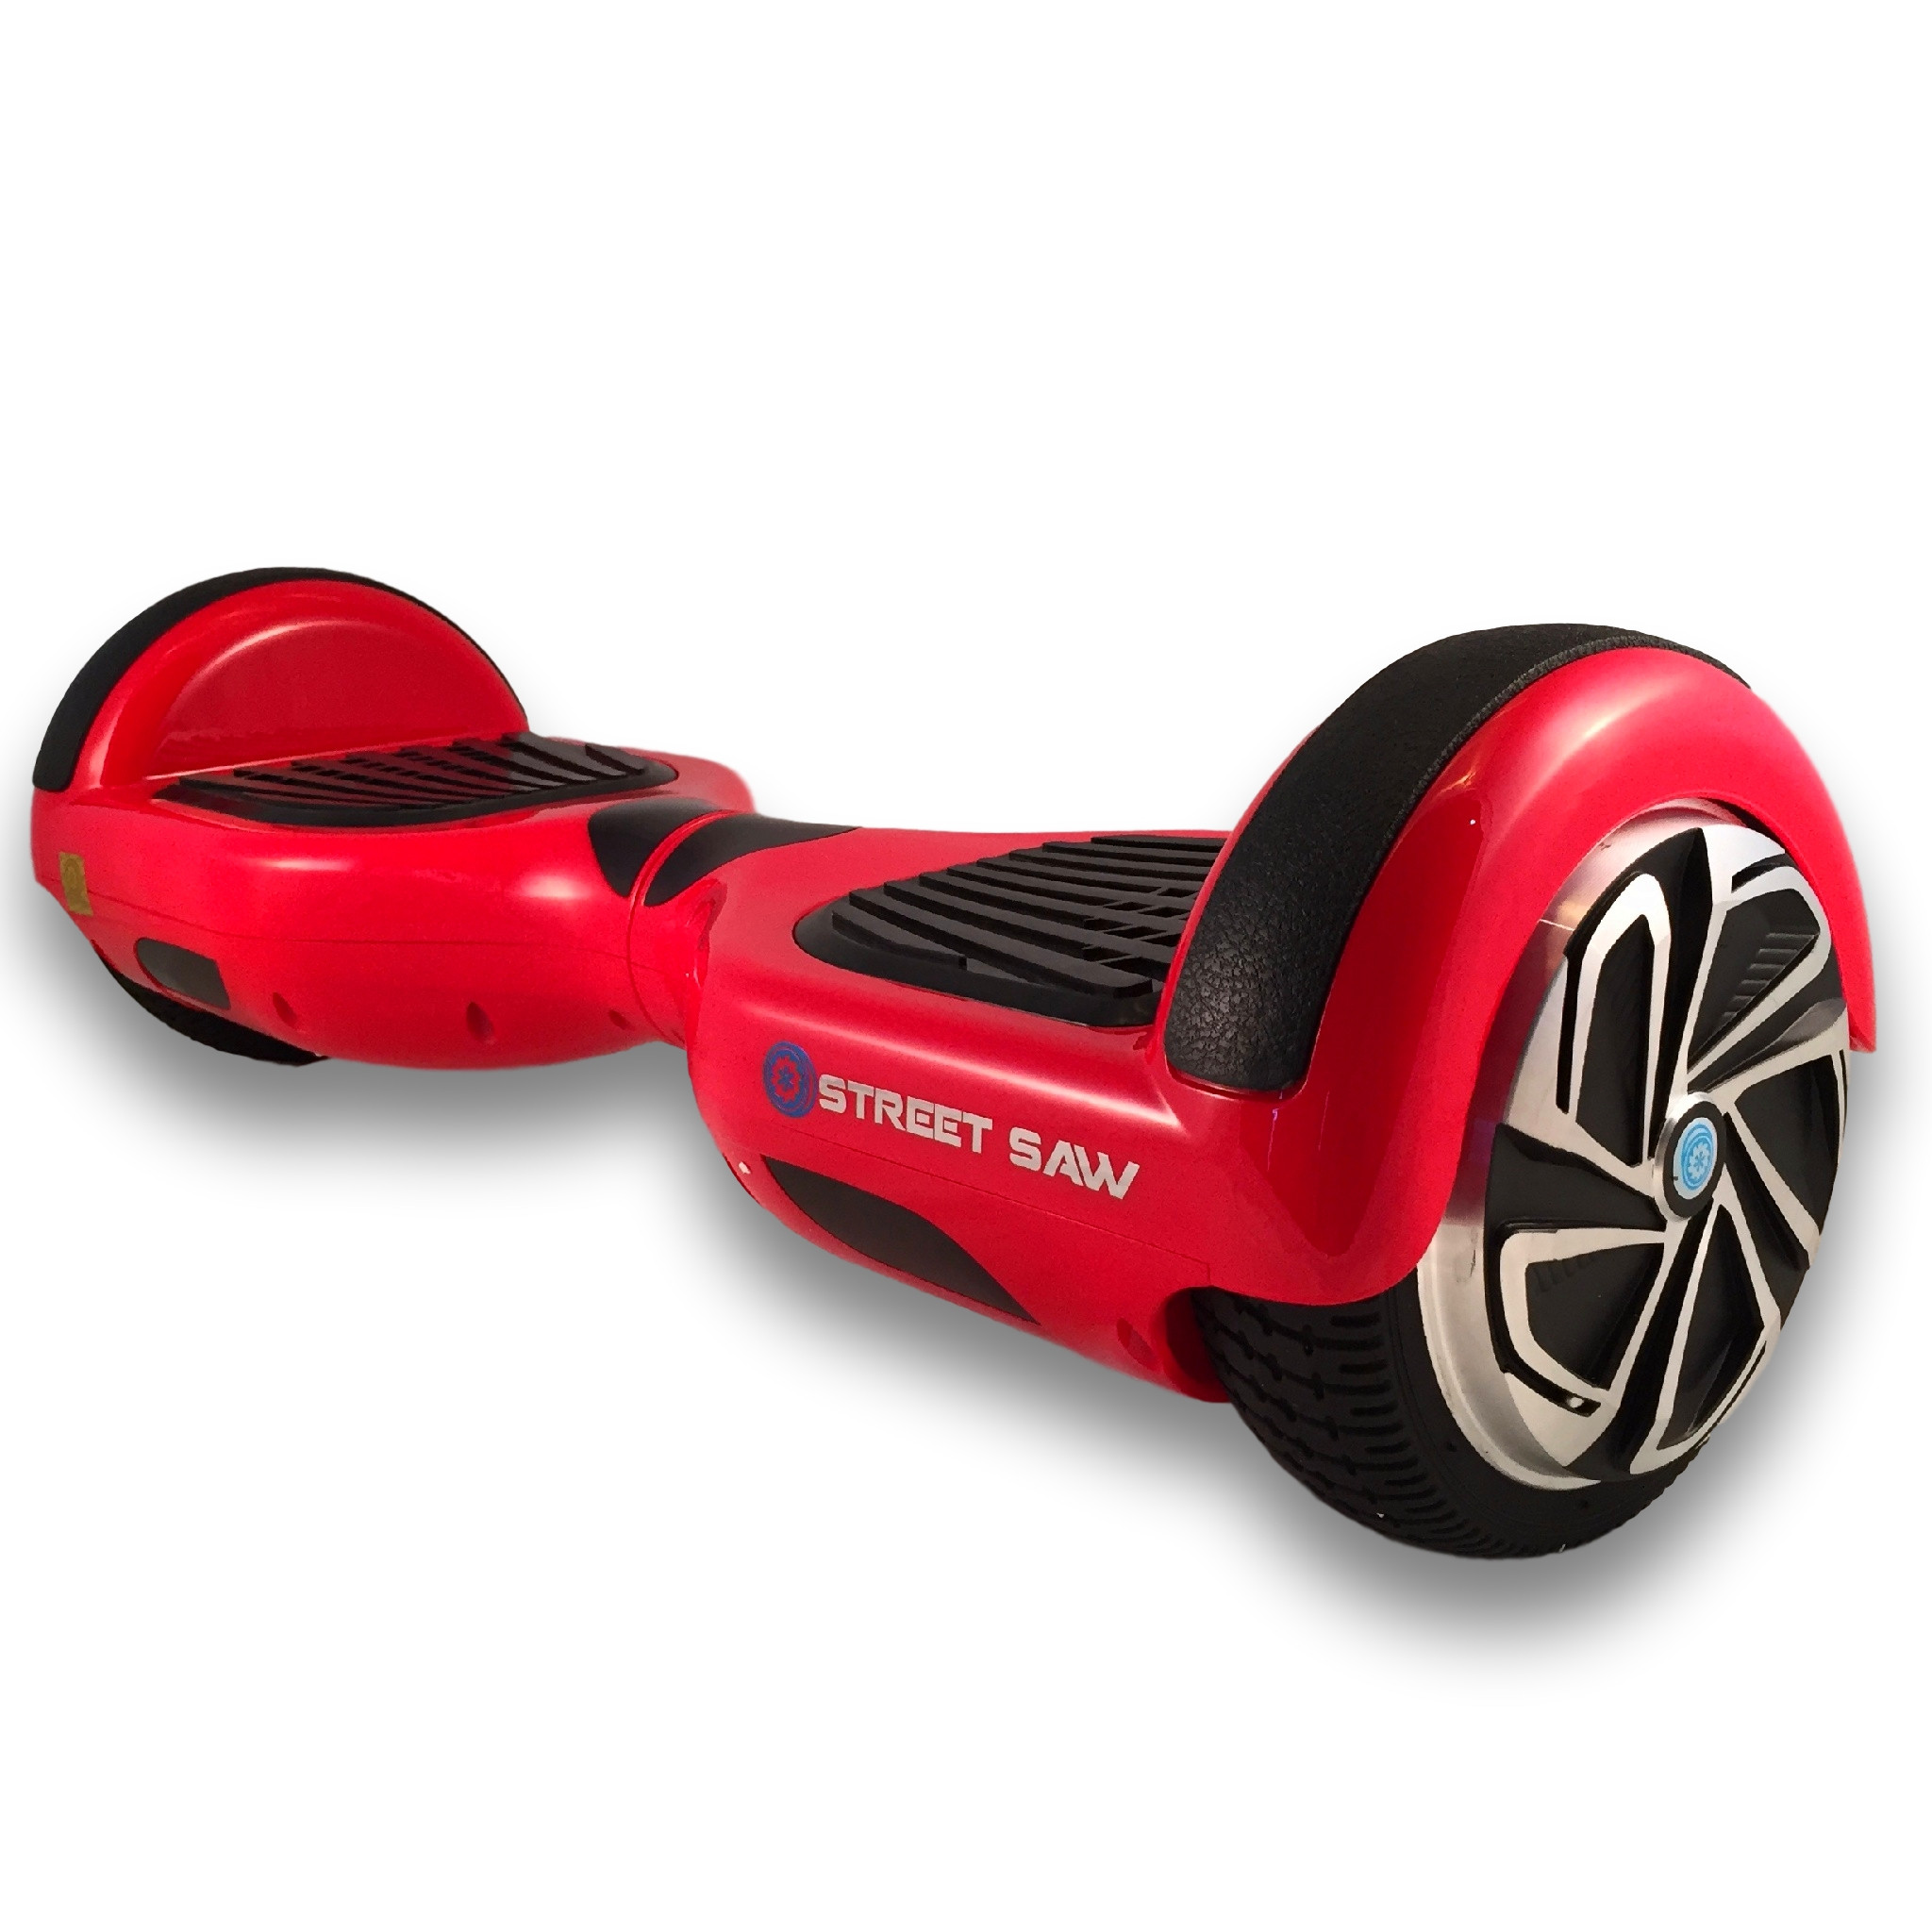 Cheapest Hoverboard Price In 2017 How Much Is A